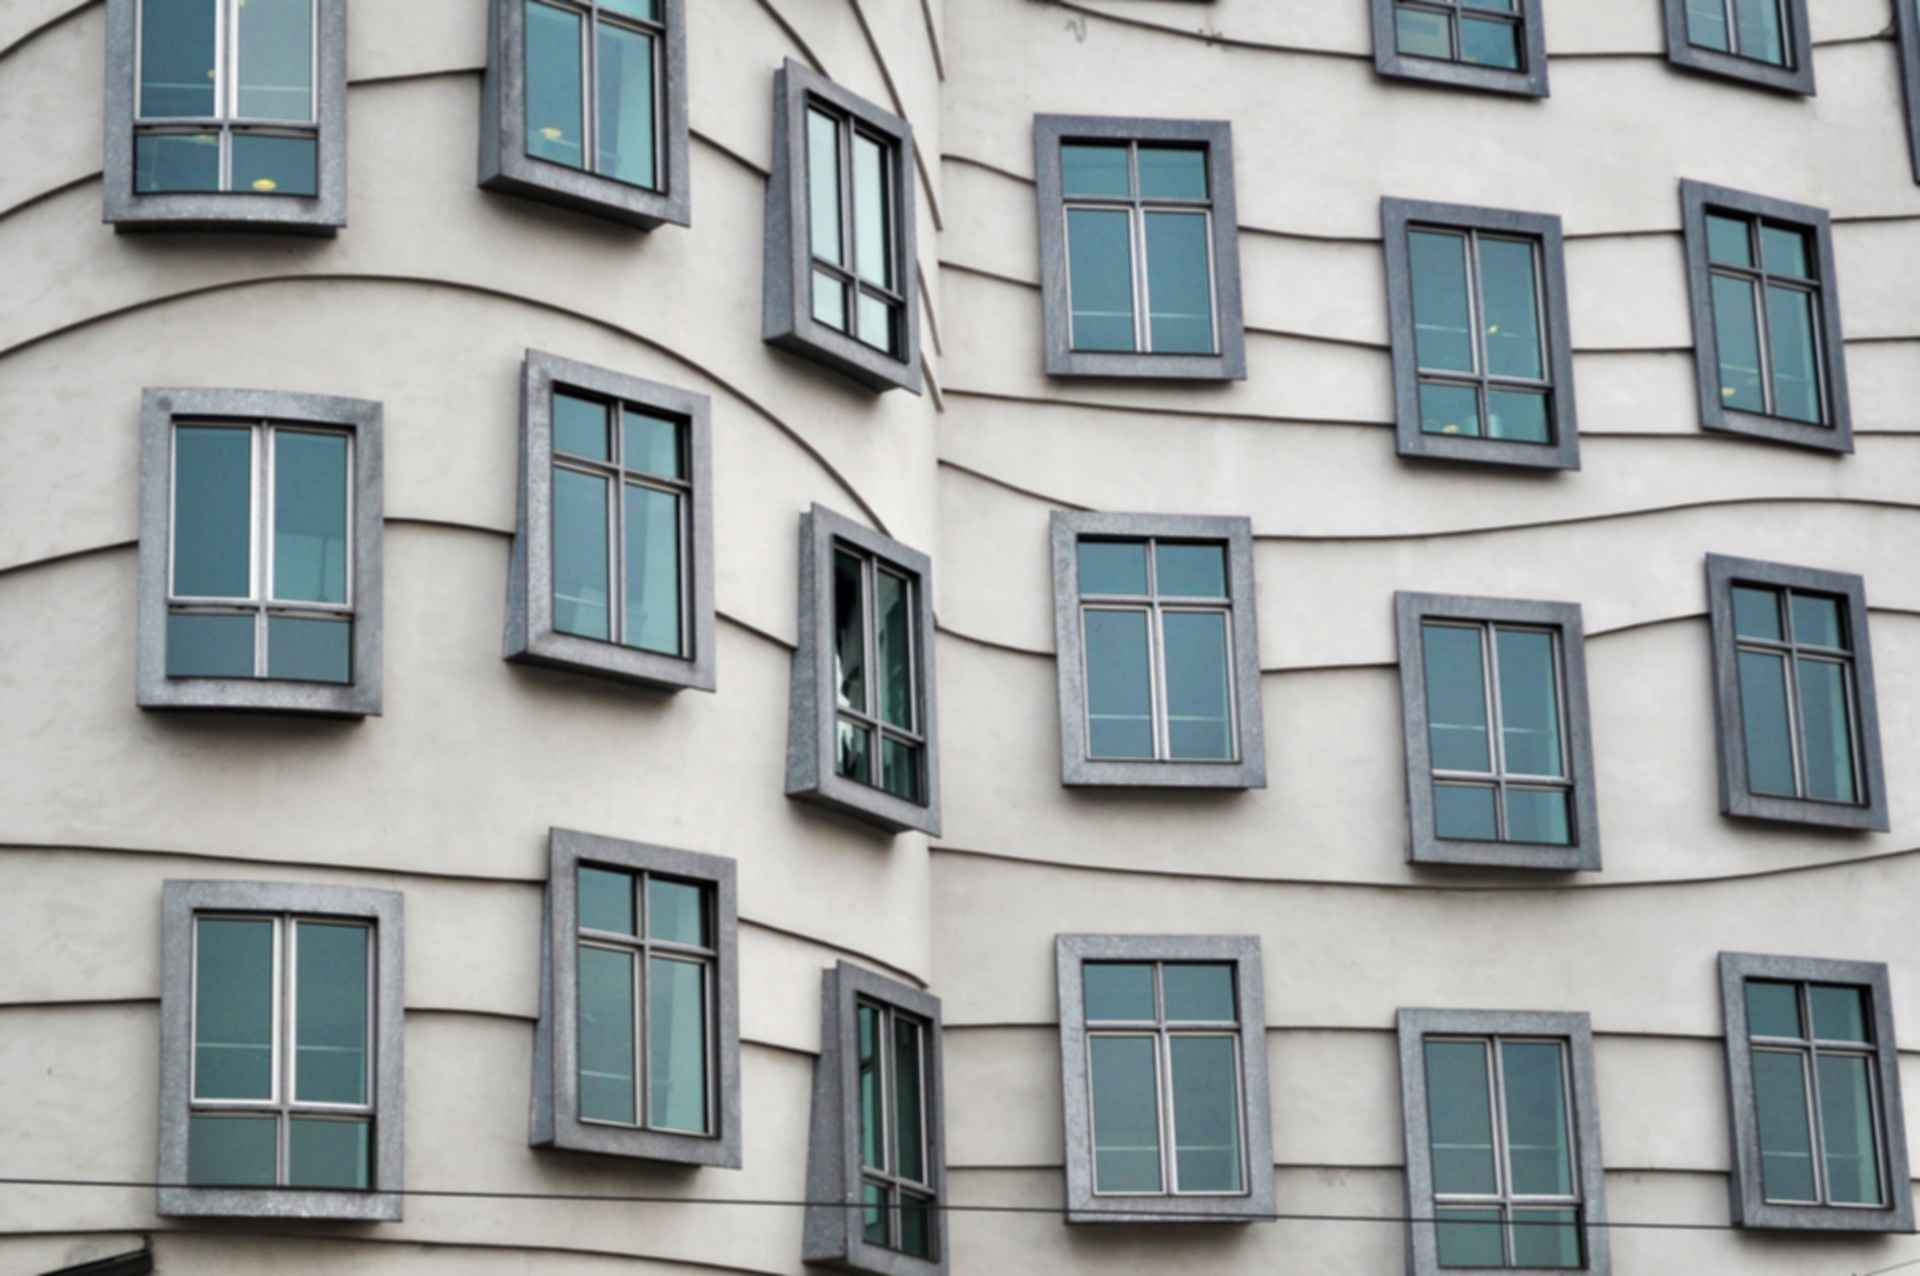 Dancing House - Windows